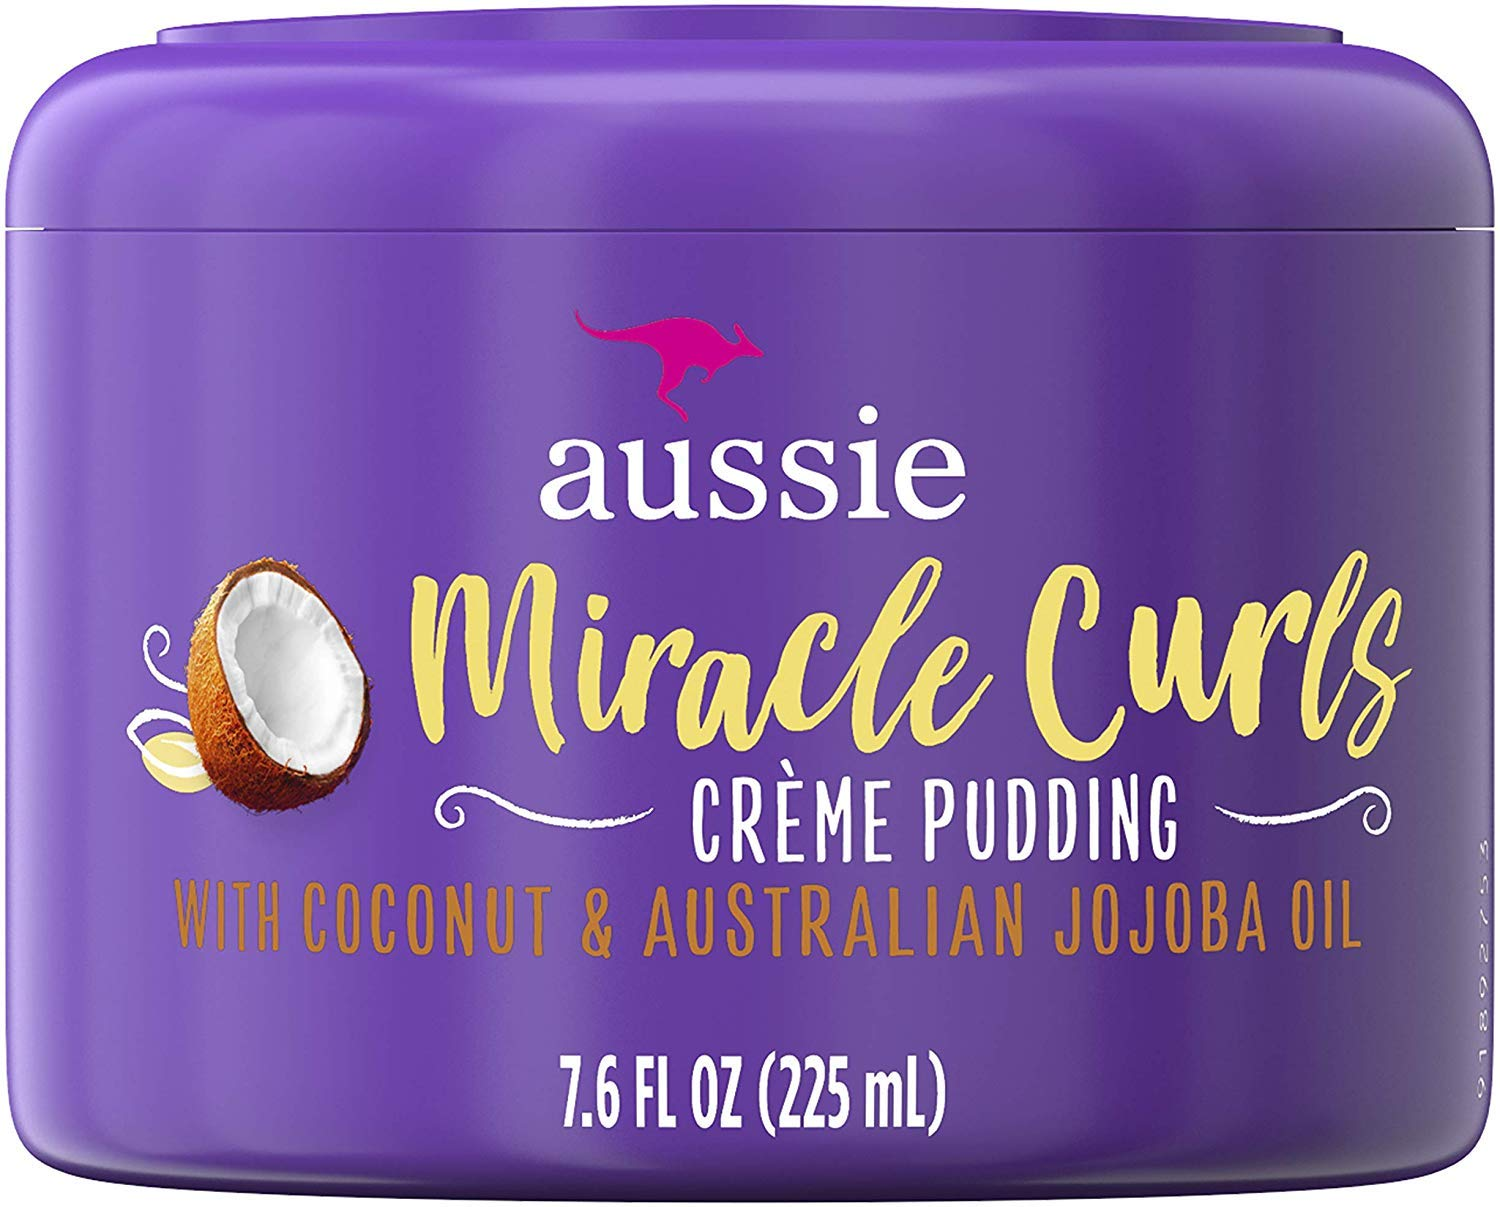 Aussie Creme Pudding Miracle Curls 7.6 Ounce Jar (225ml)